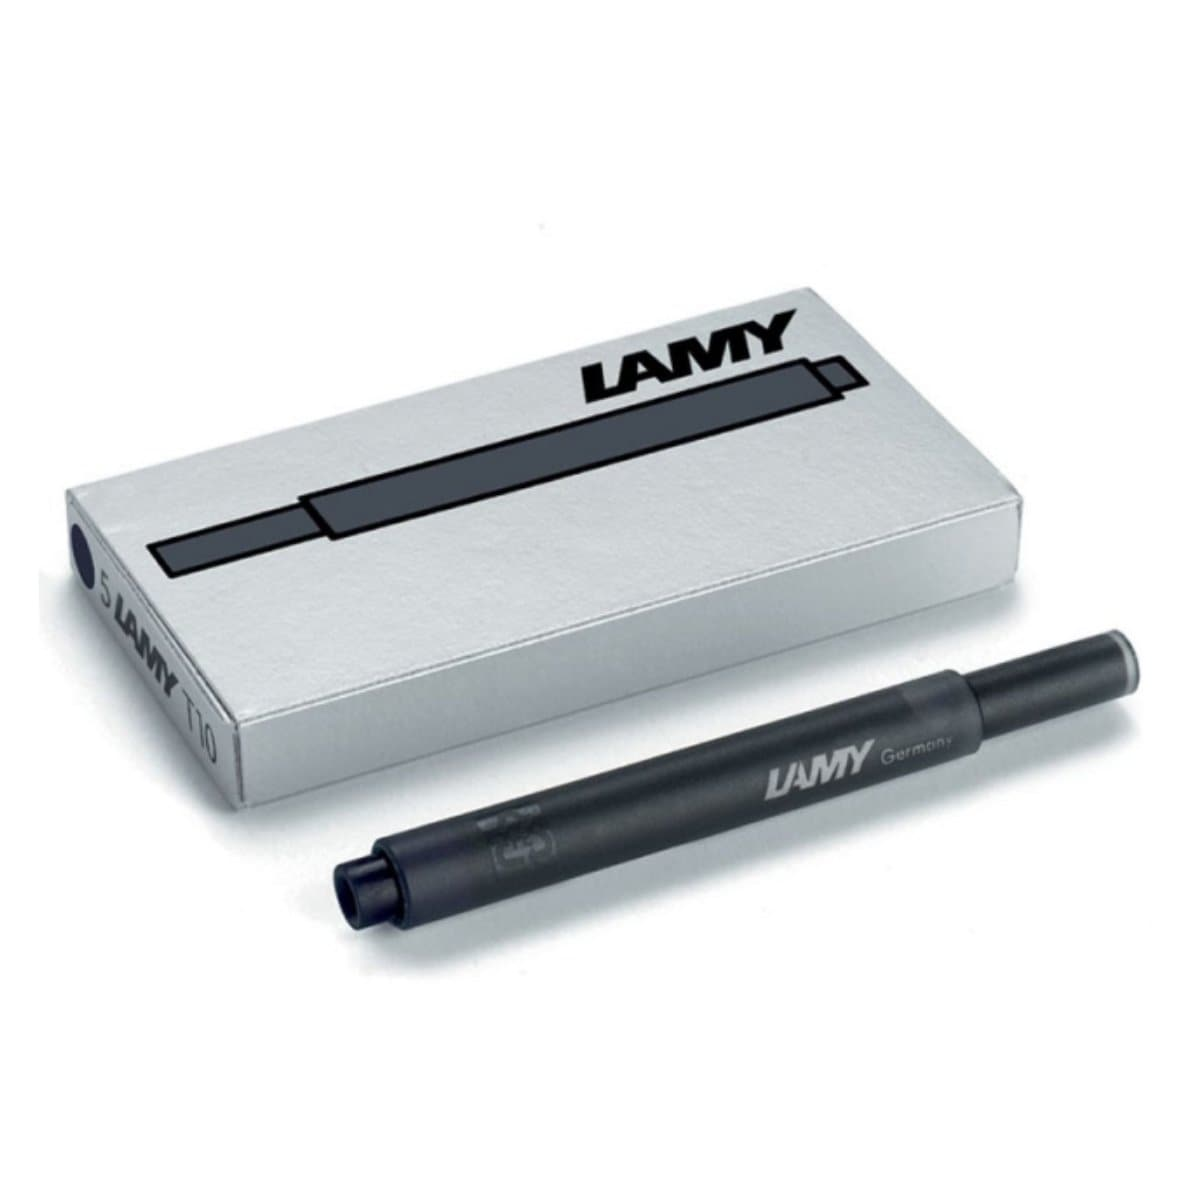 LAMY T 10 Giant Ink Cartridge, 5/pack, Black